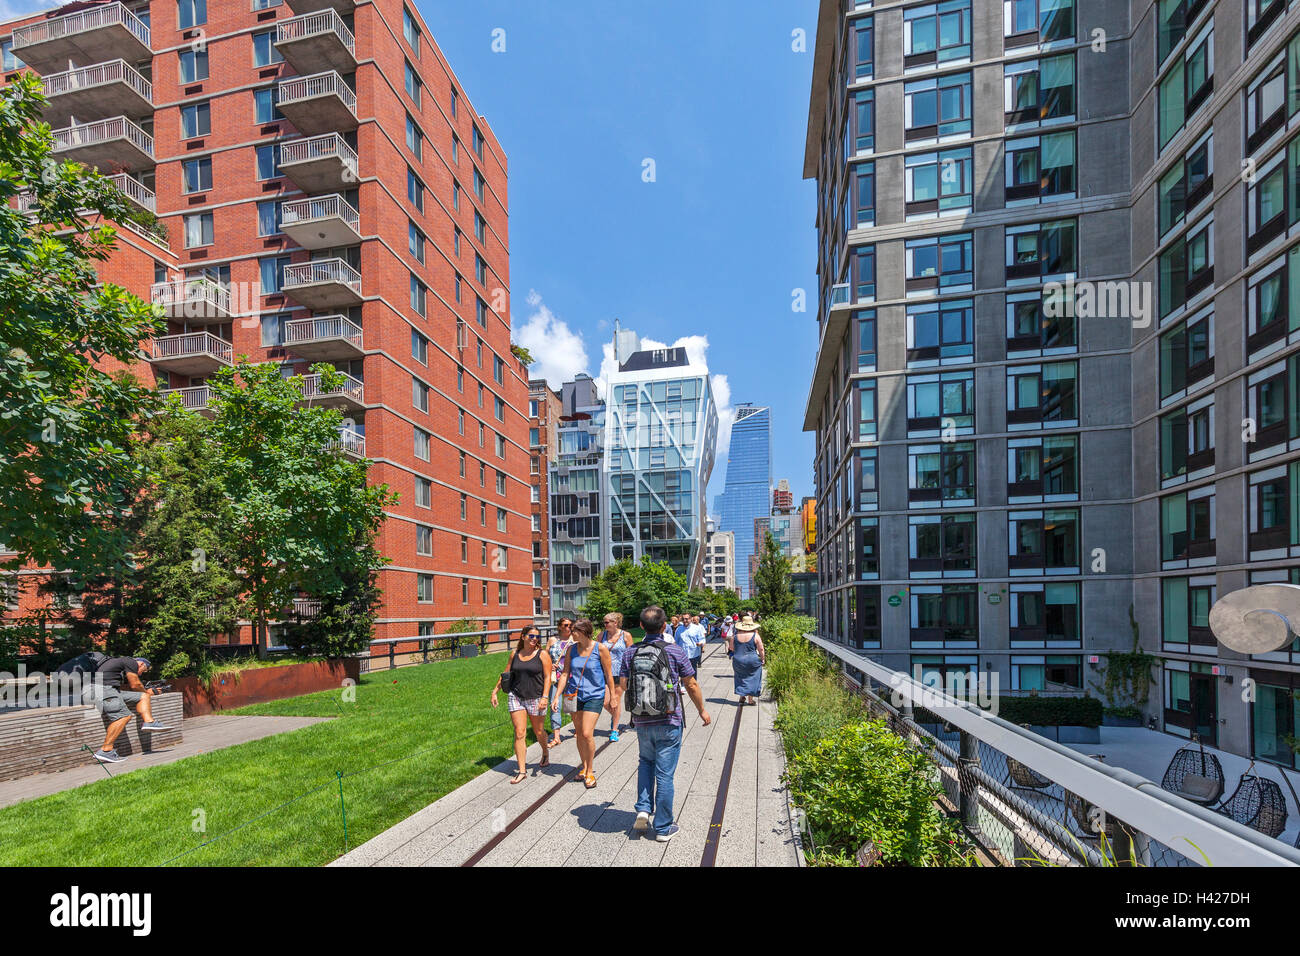 People walking and enjoying The New York City High Line Park. - Stock Image